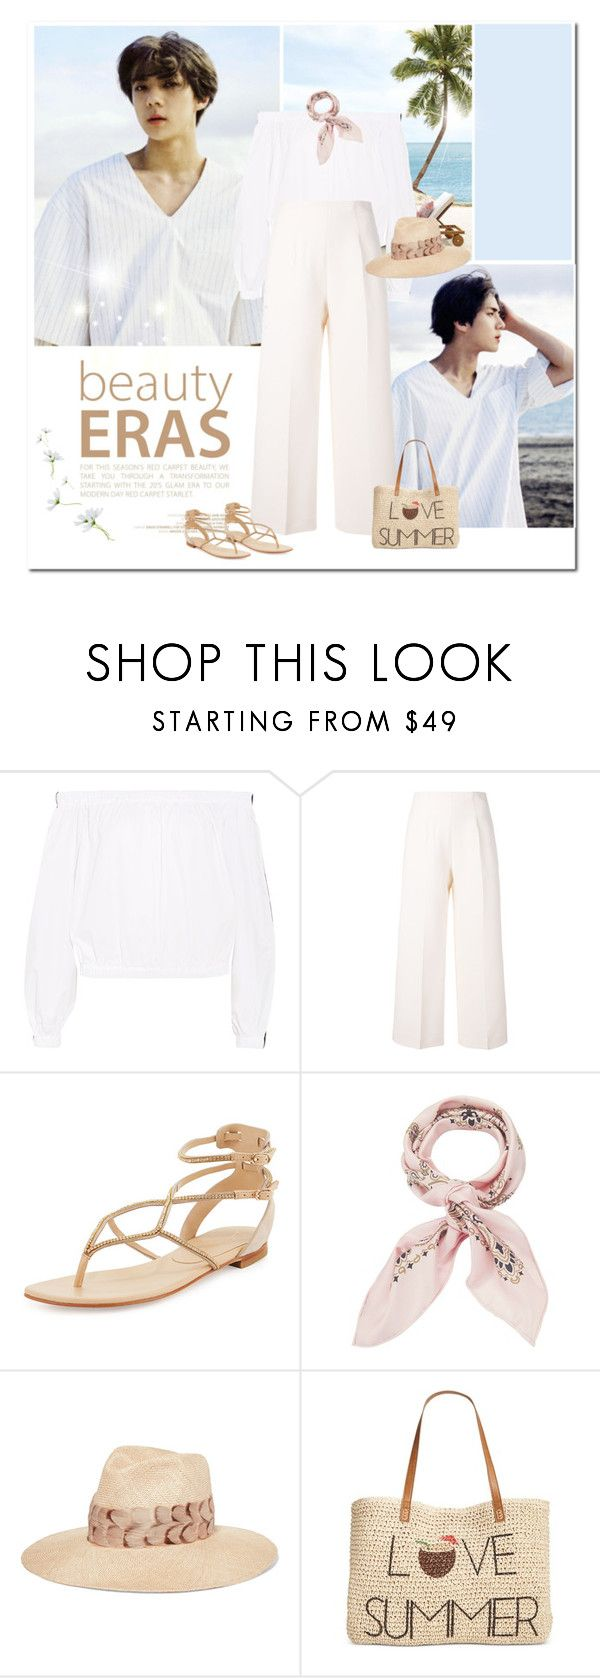 """Summer breathe"" by girl-with-ideas ❤ liked on Polyvore featuring Paper London, Fendi, Lola Cruz, Manipuri, Eugenia Kim and Style & Co."